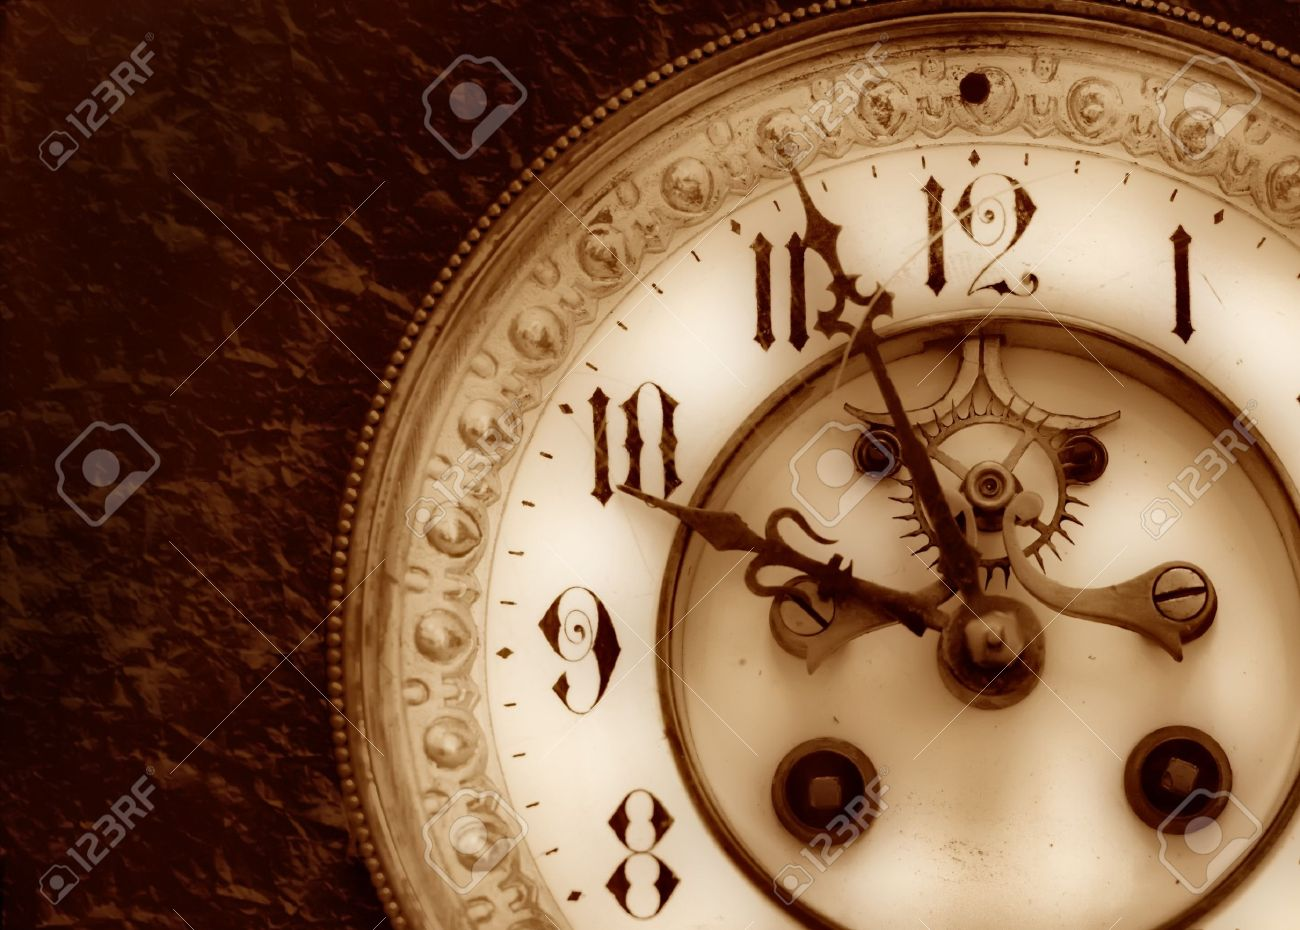 Old clock on the relief background Stock Photo - 4175943